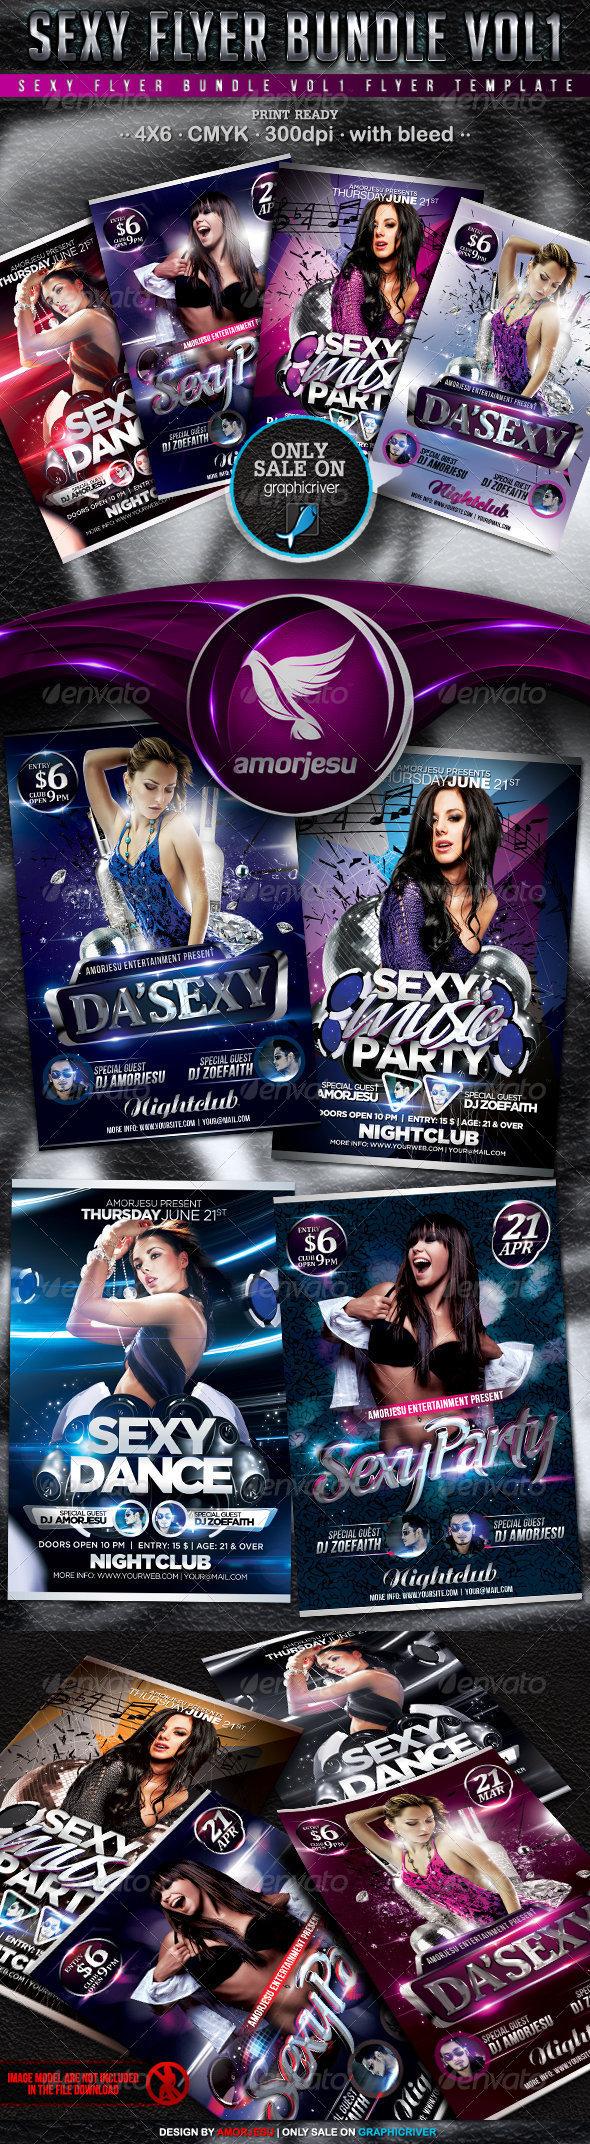 Sexy Flyer Bundle Vol1 - 4 in 1 - Events Flyers